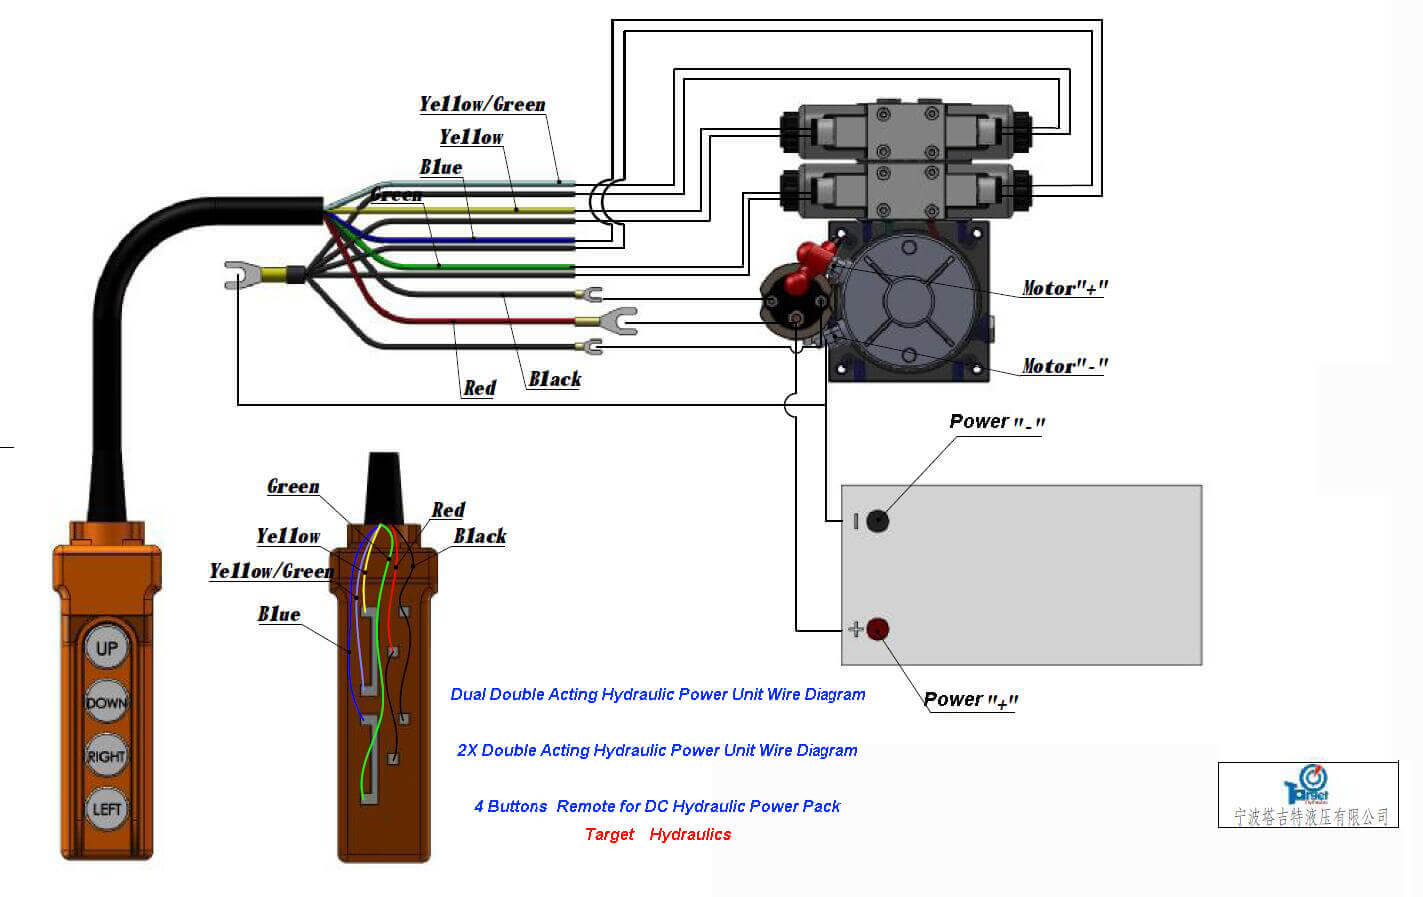 dual double acting hydraulic cylinder Power Units Wiring Diagram drawing how to wire hydraulic power pack,power unit diagram design dump trailer remote control wiring diagram at alyssarenee.co